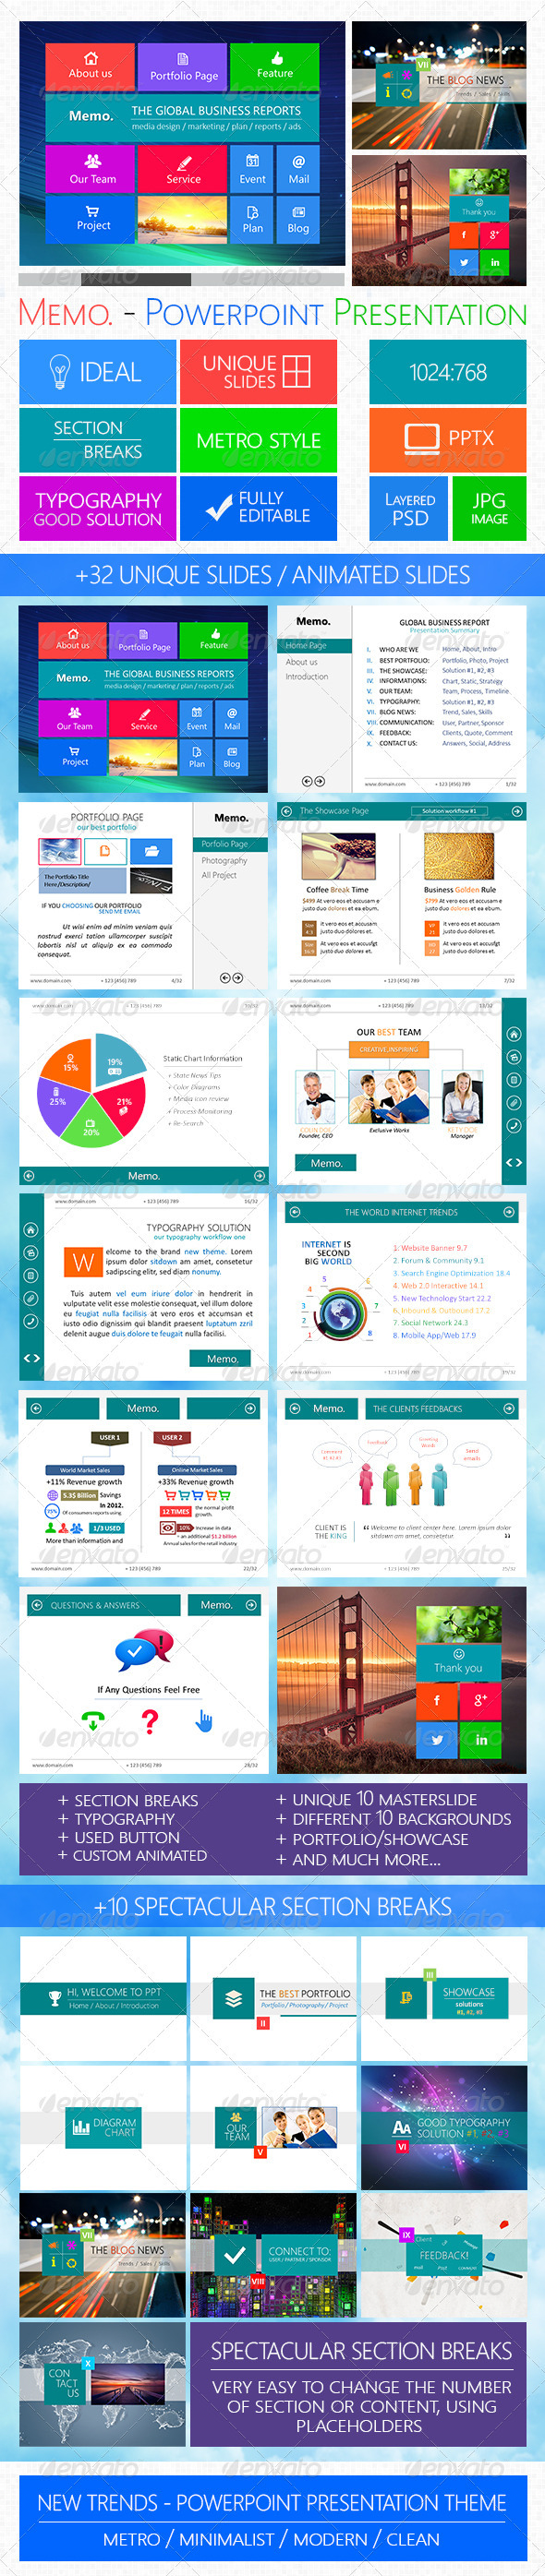 GraphicRiver Memo Powerpoint Presentation Template 3856135